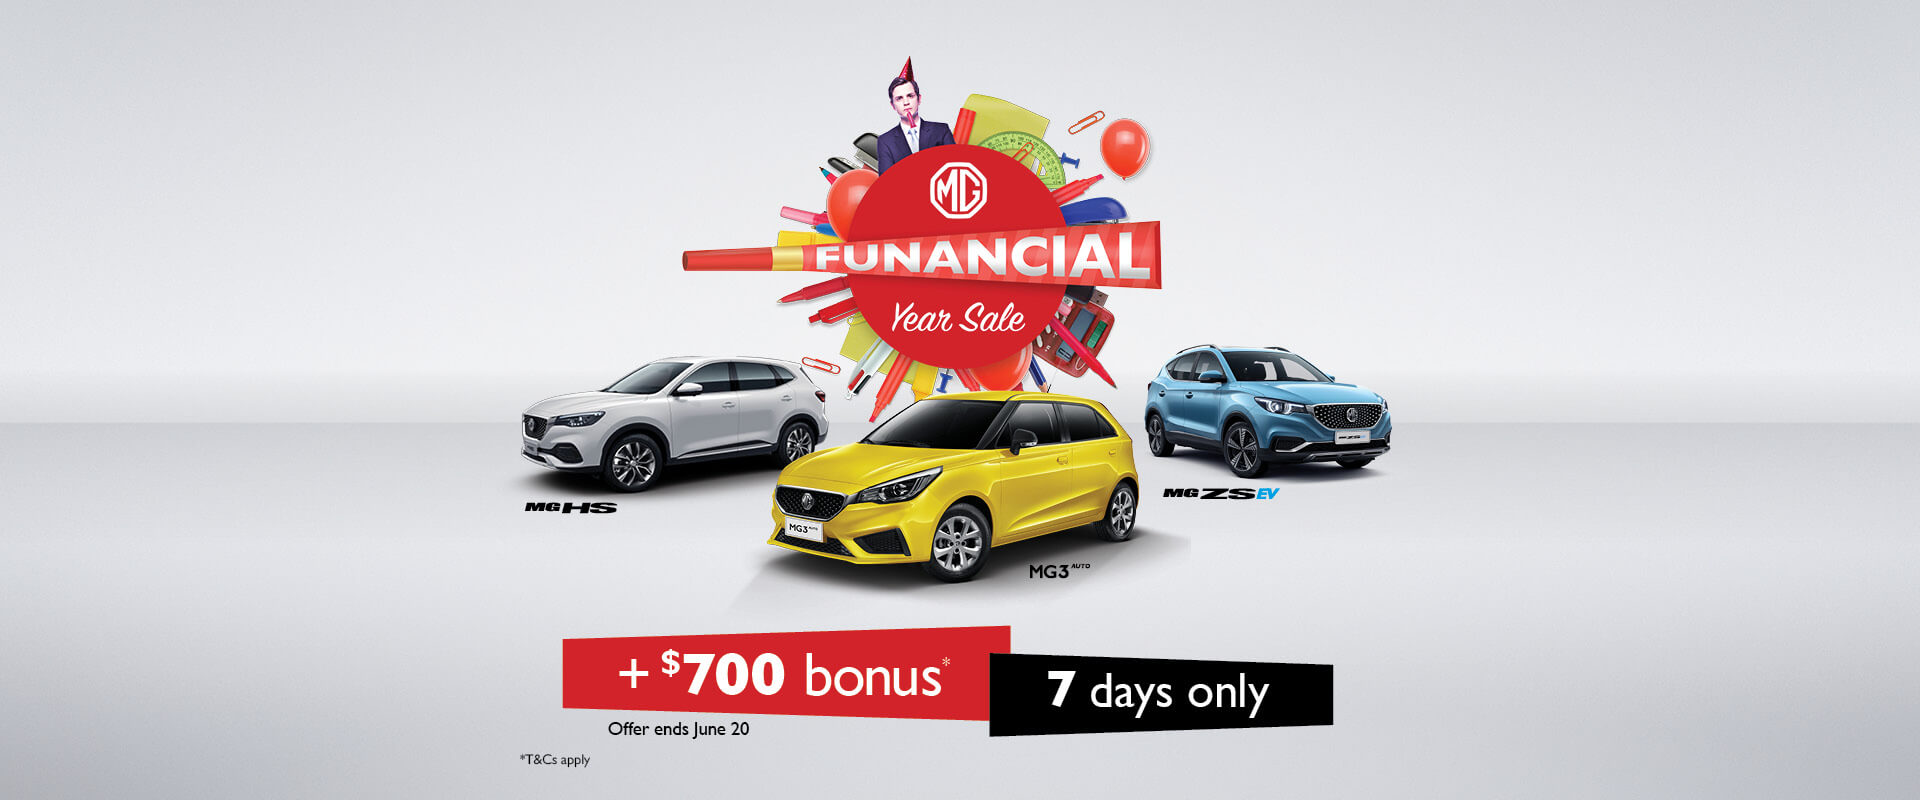 MG Funancial Year Sale. +$700 bonus*. 7 days only. Offers ends June 20